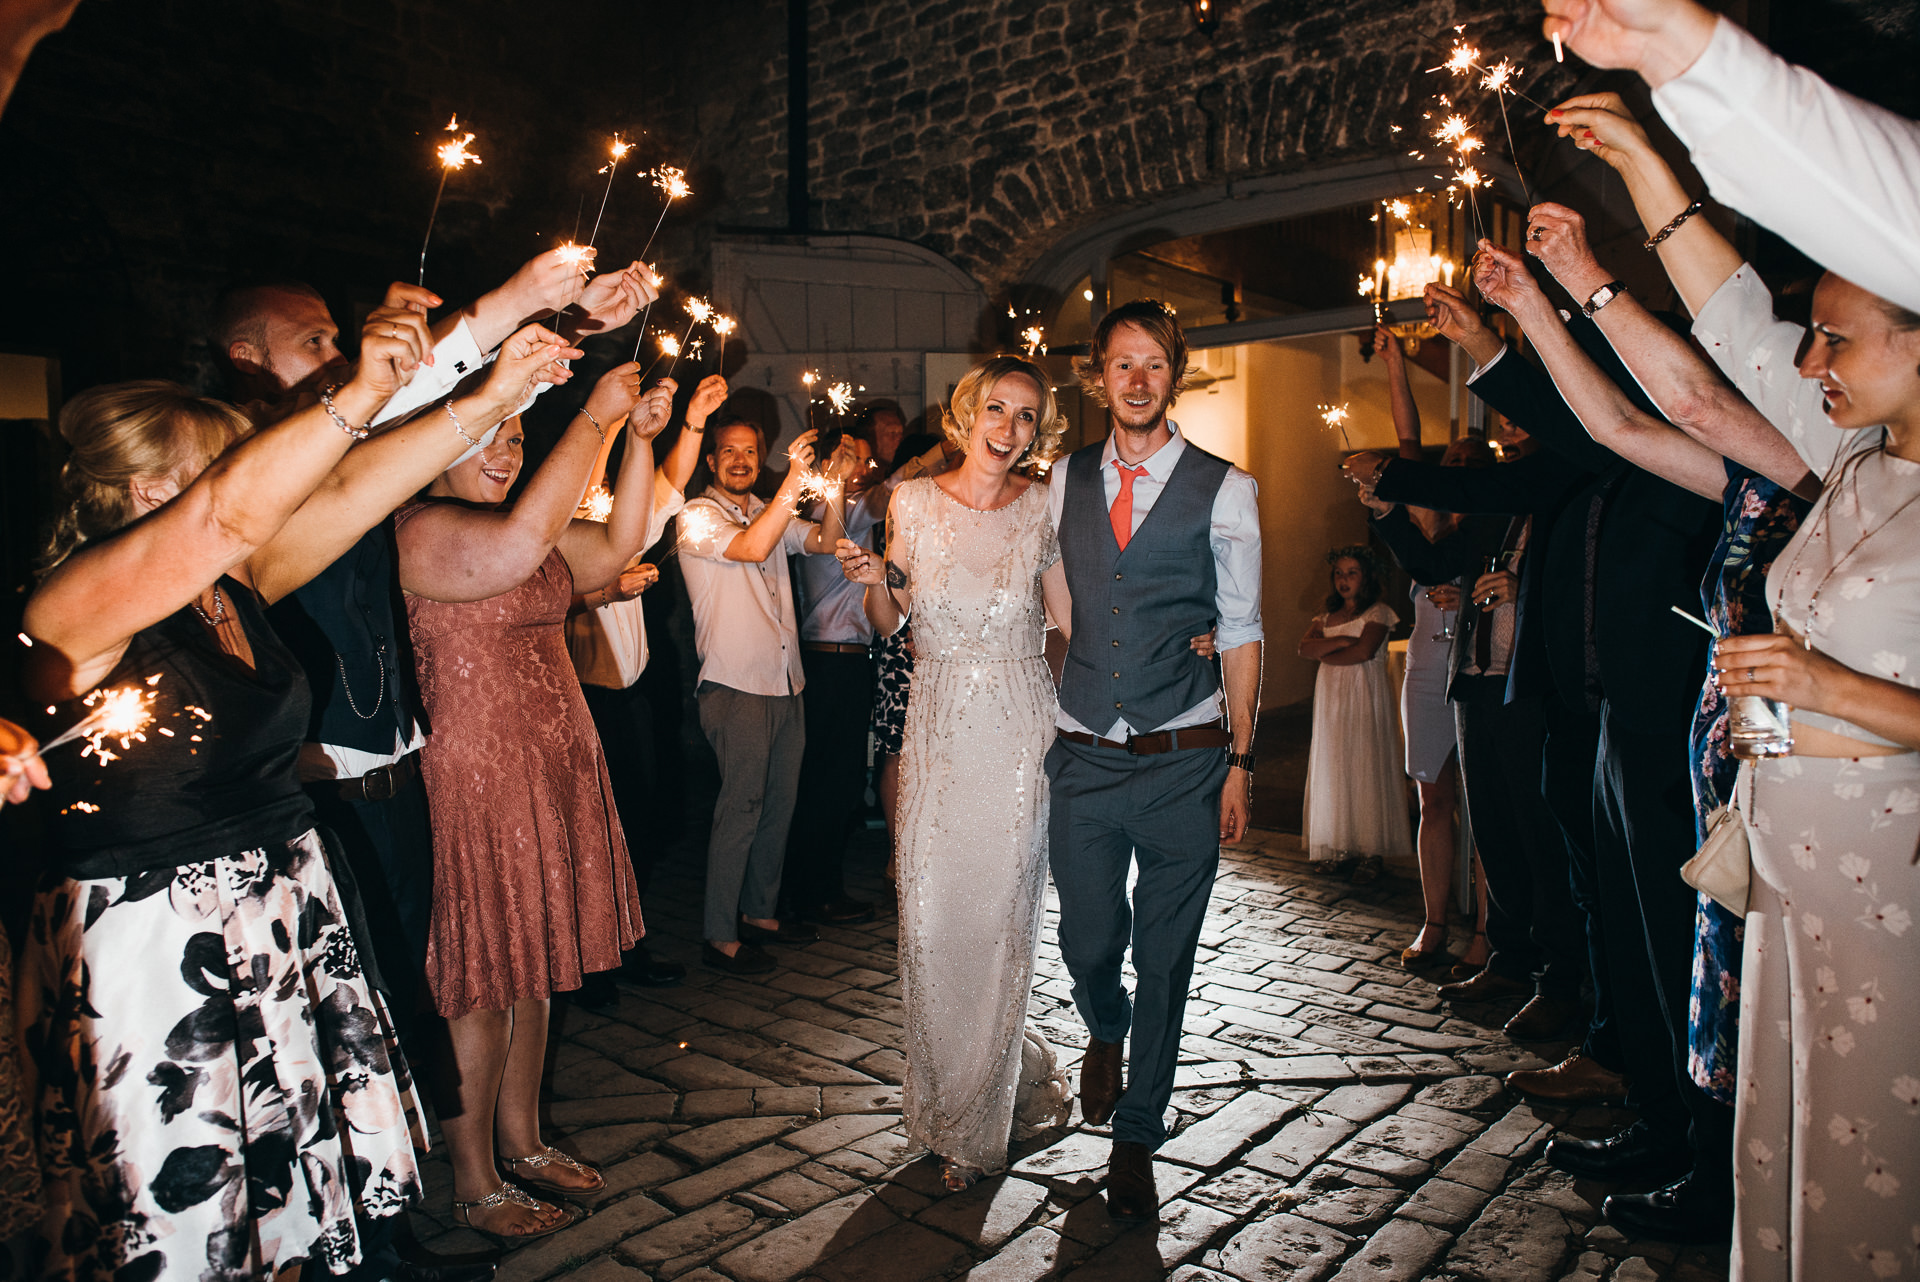 Pennard house wedding sparklers